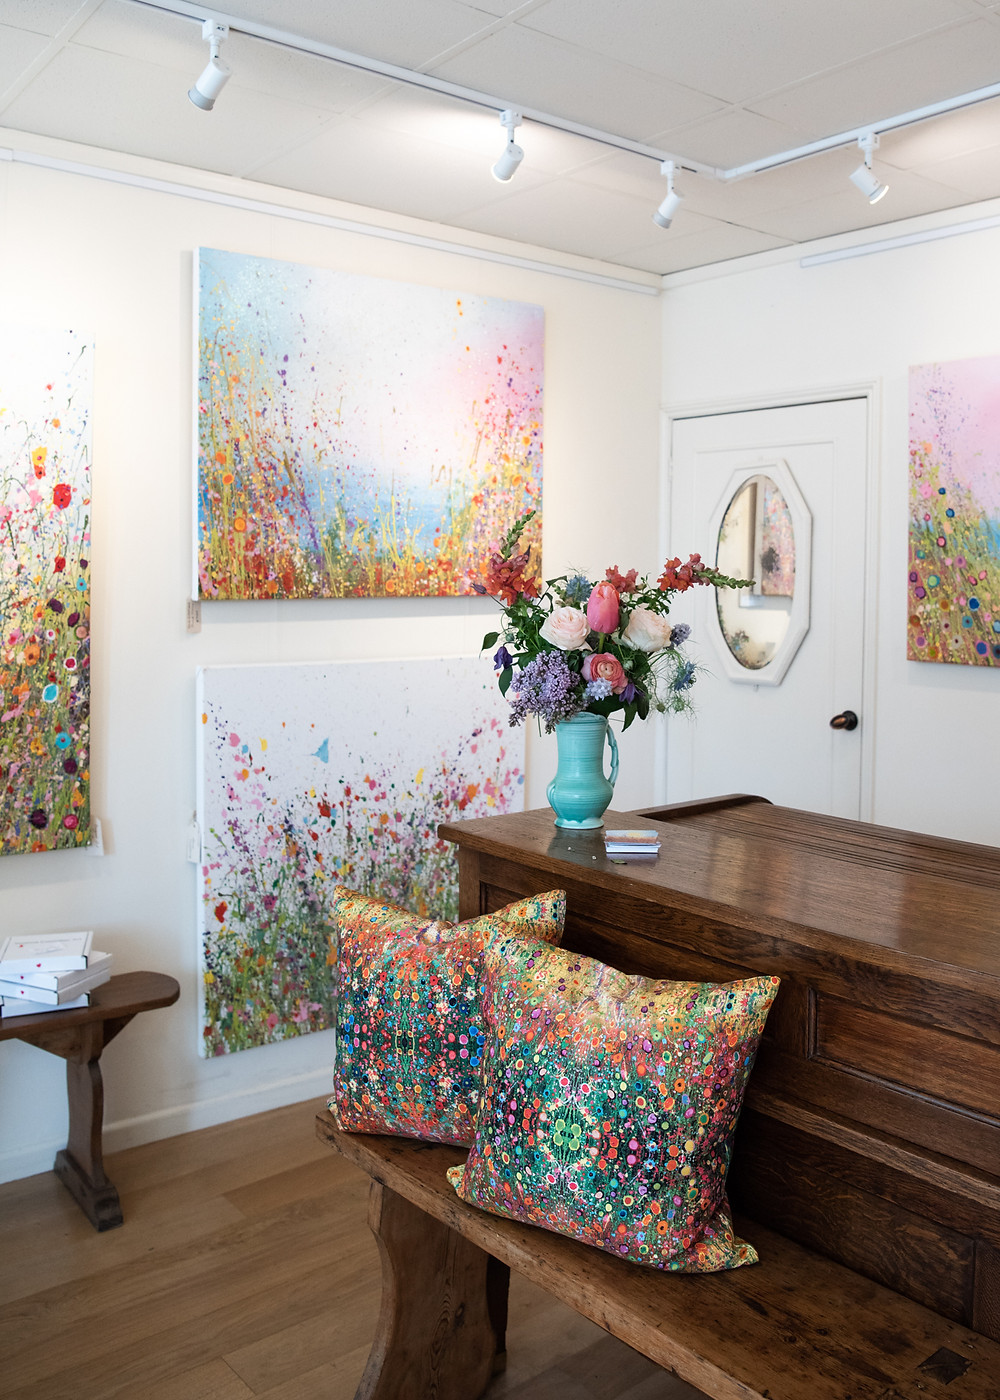 Wild For Flowers - Yvonne Comber's gallery in Totnes